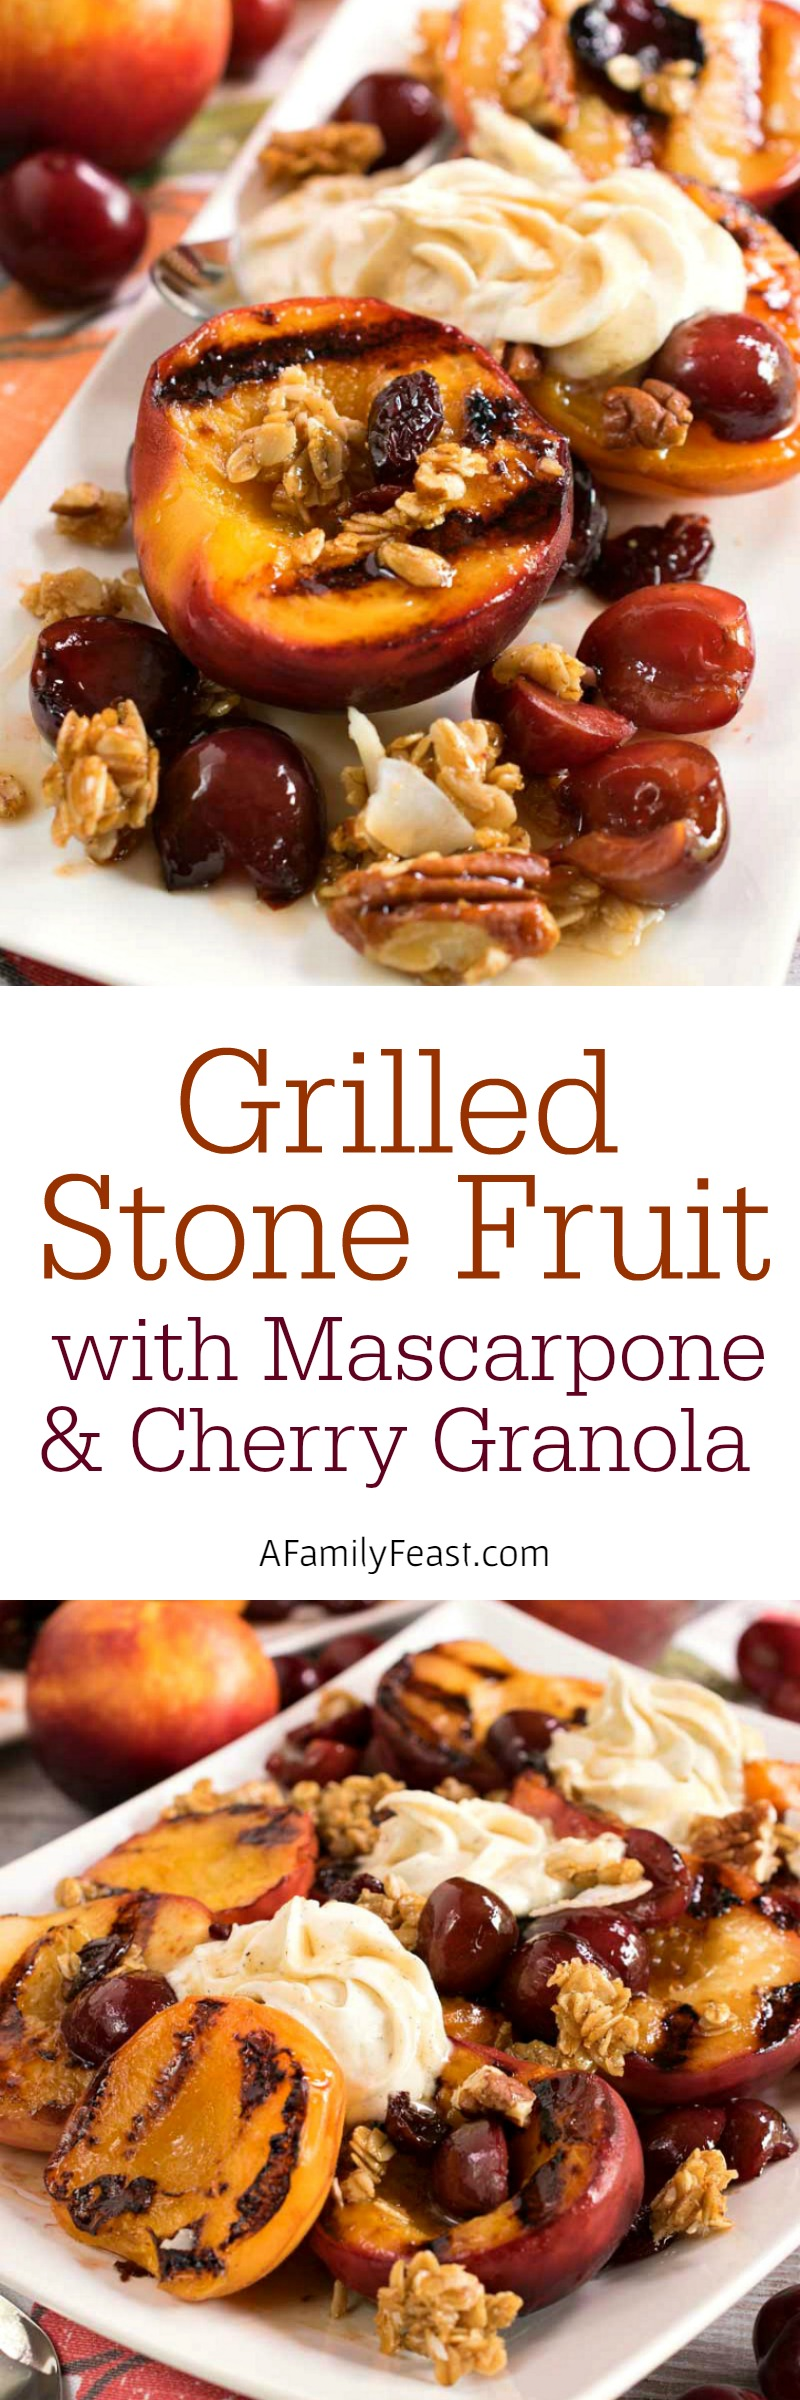 Grilled Stone Fruit with Mascarpone and Cherry Granola - The perfect ...